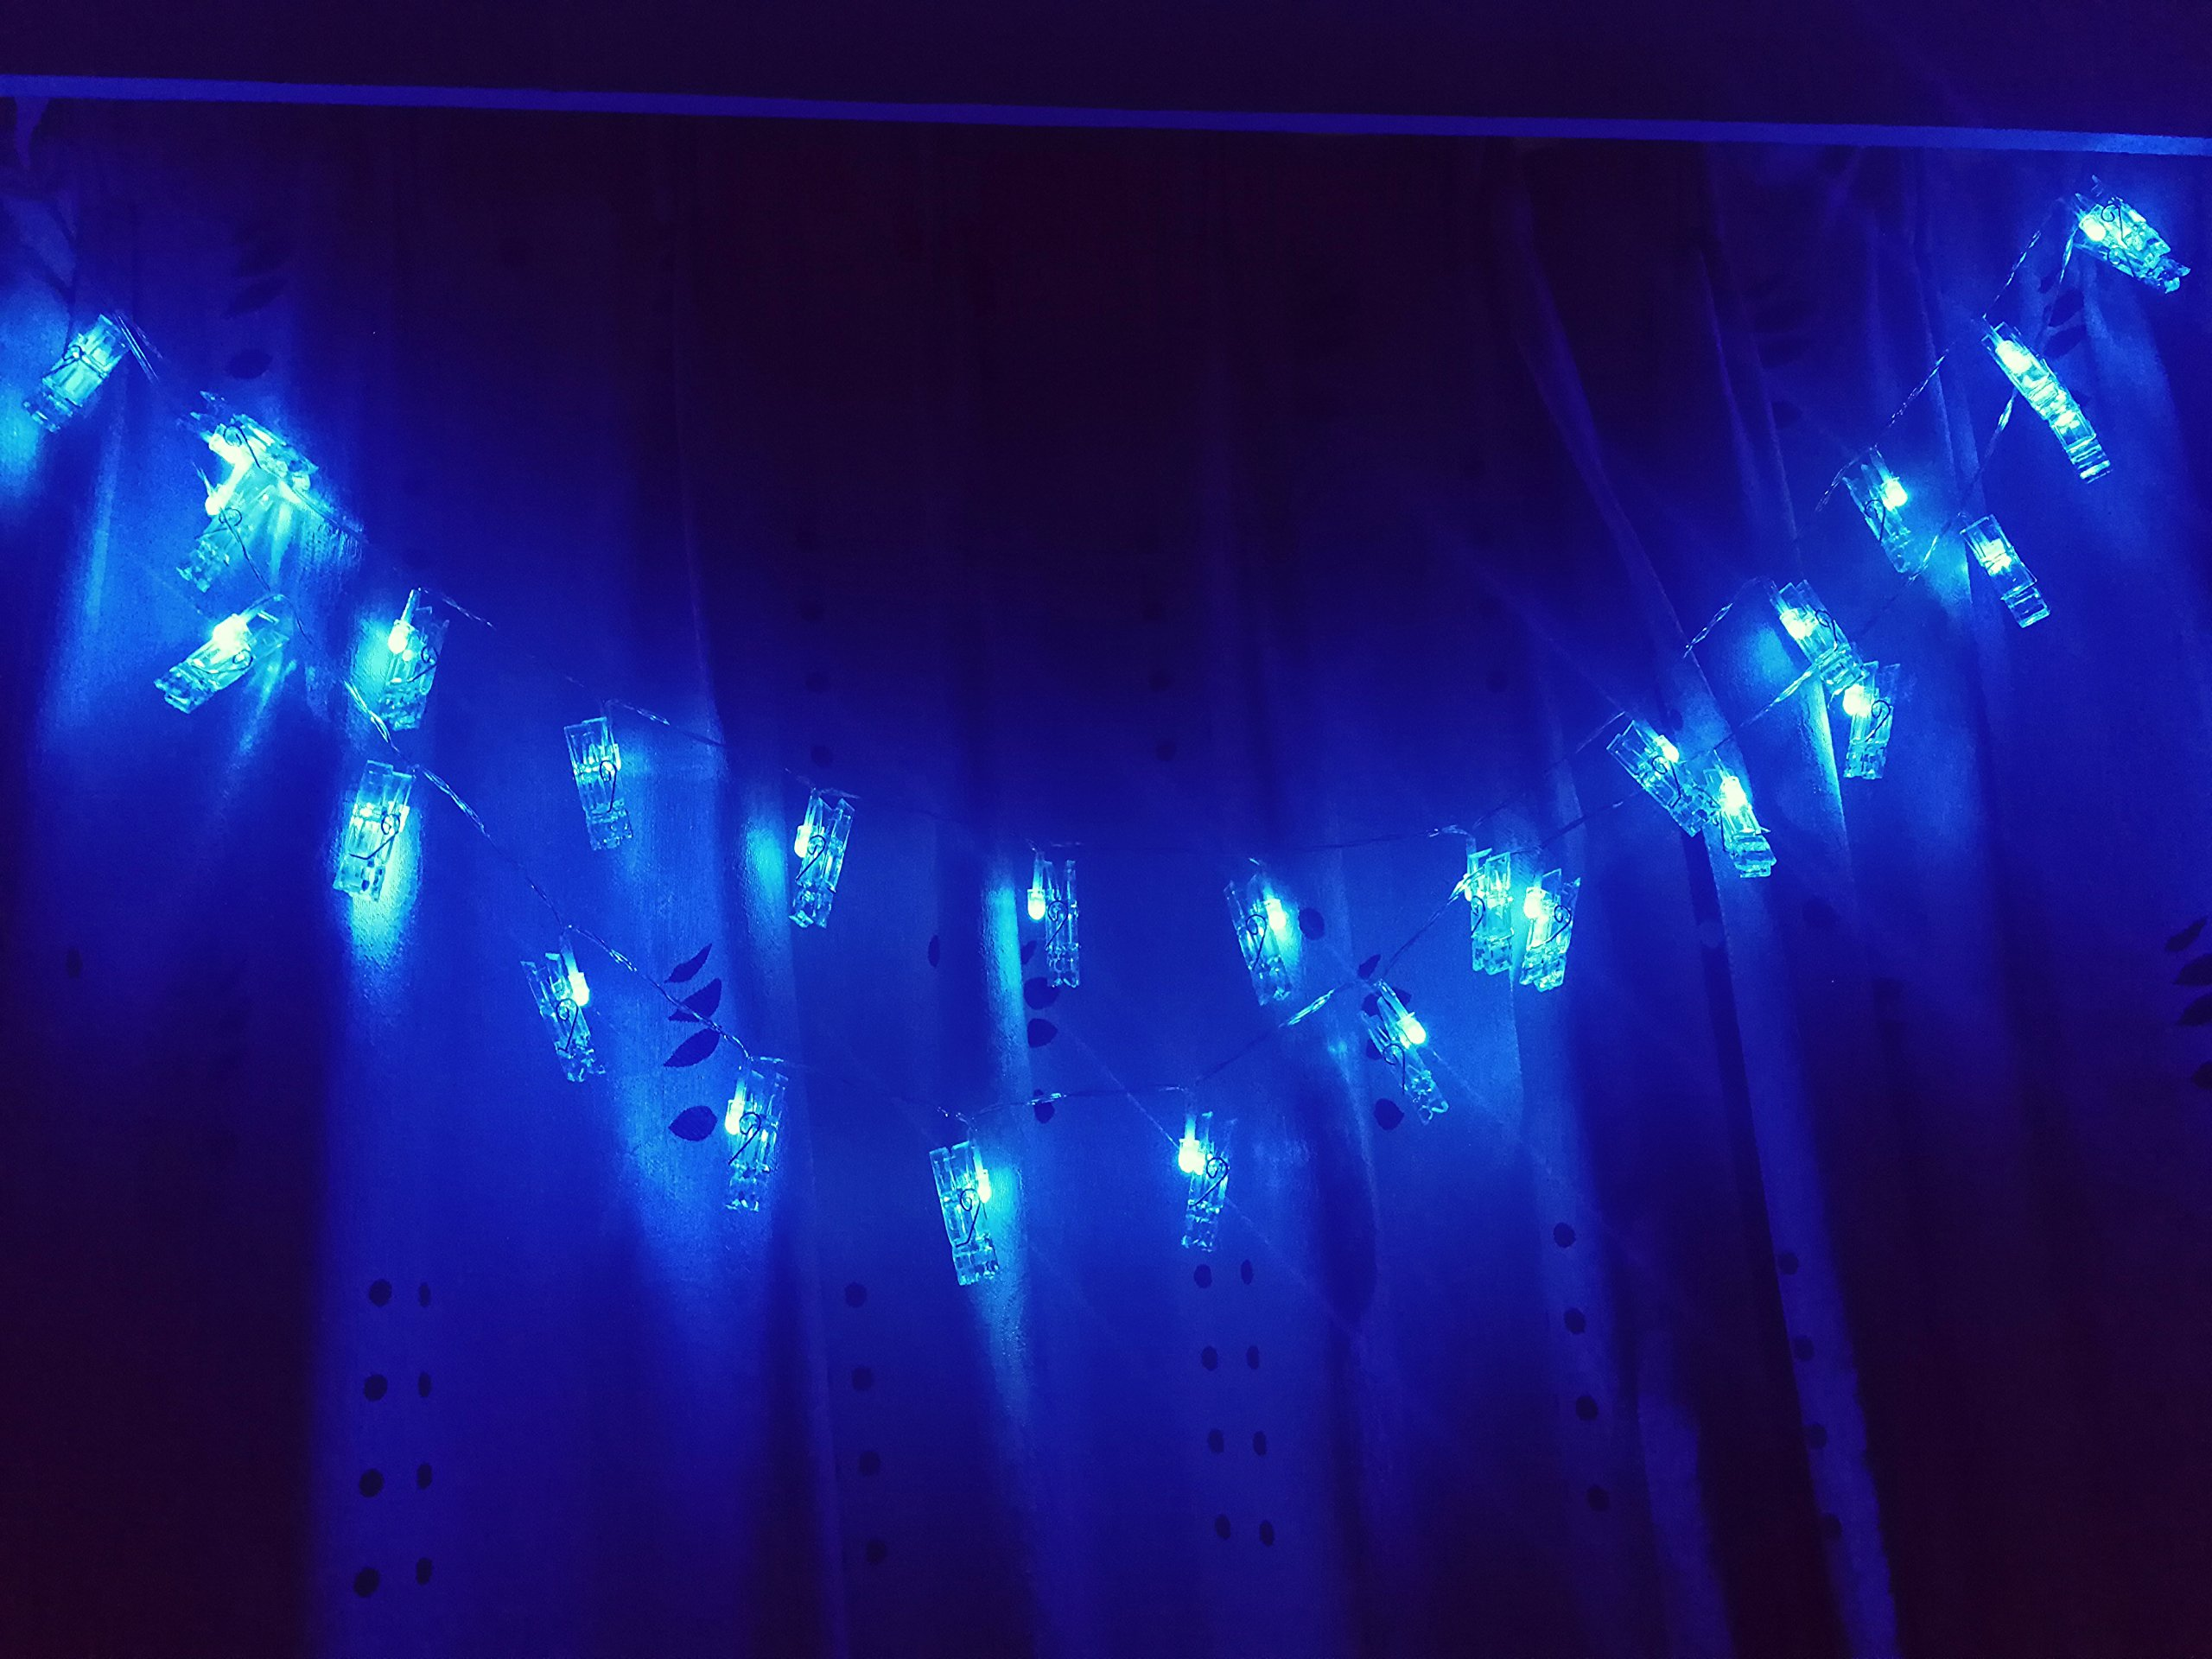 X-GIFT Photo Clips String Lights,Wall Decor Accessories, Coolest Blue Lights, Battery Operated, 40 LEDs - Ideal Gift for Girls Living College Gift Room Wall